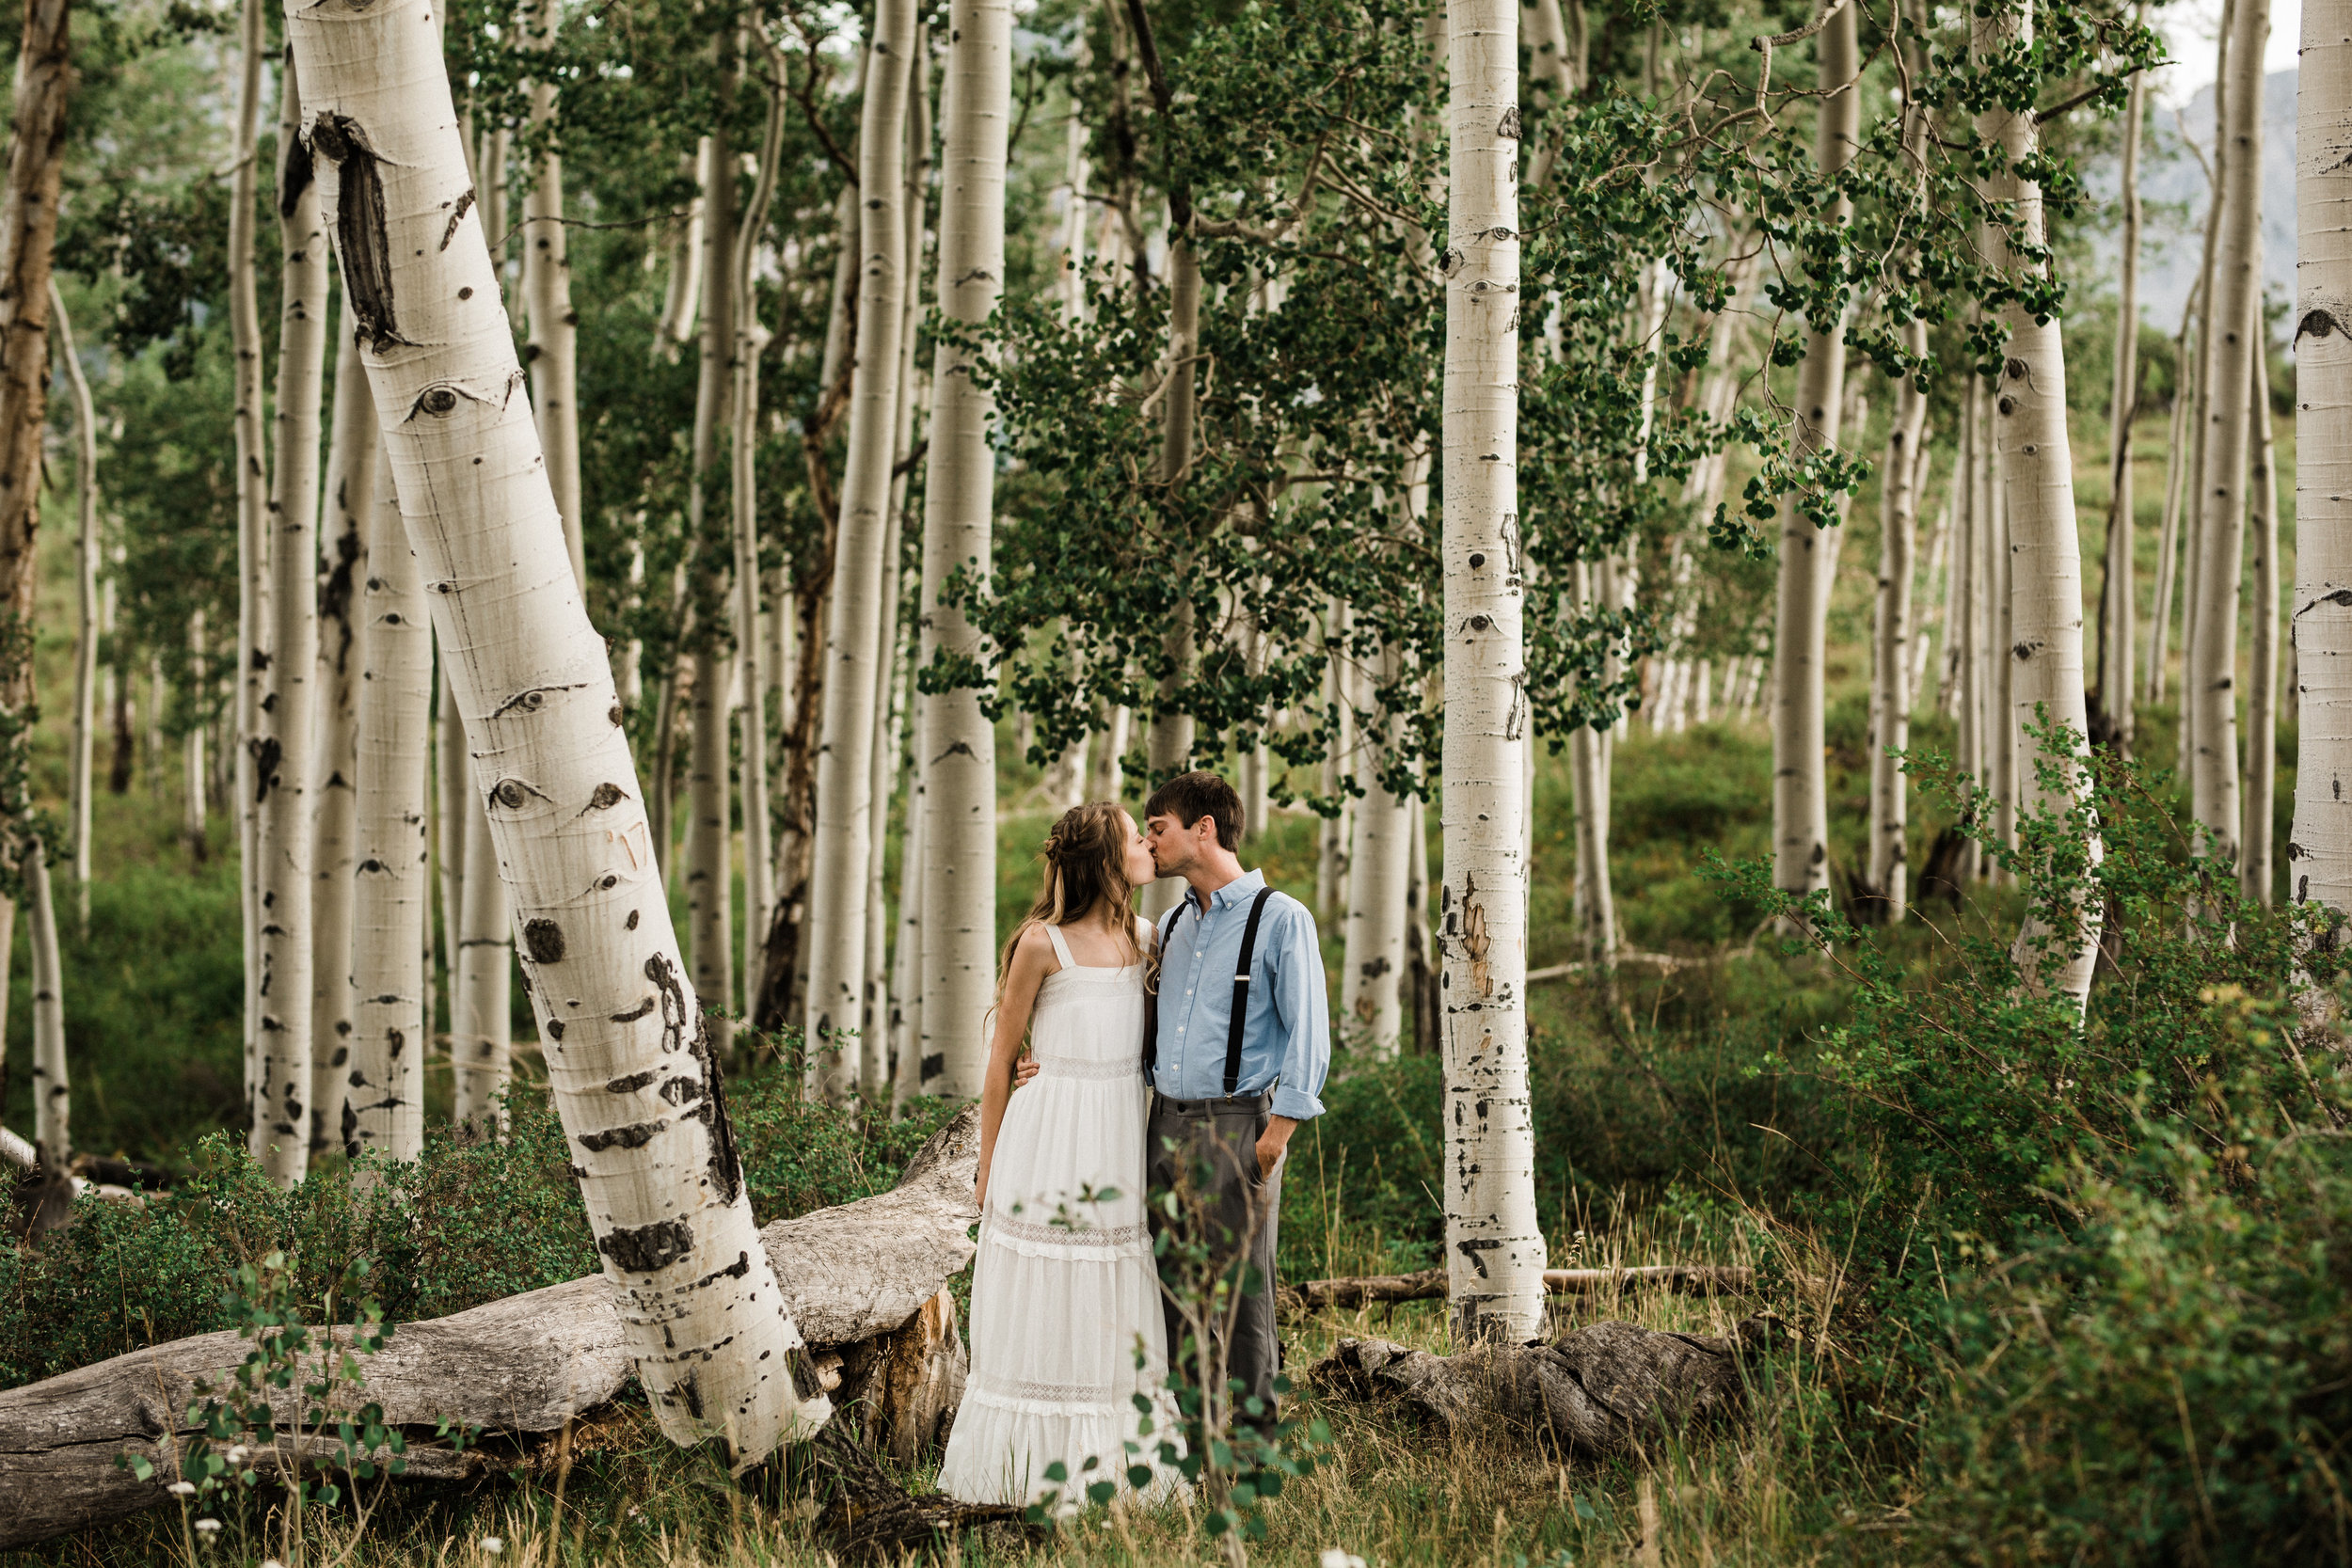 leahandashton-telluride-wedding-photography-KC-0008.jpg